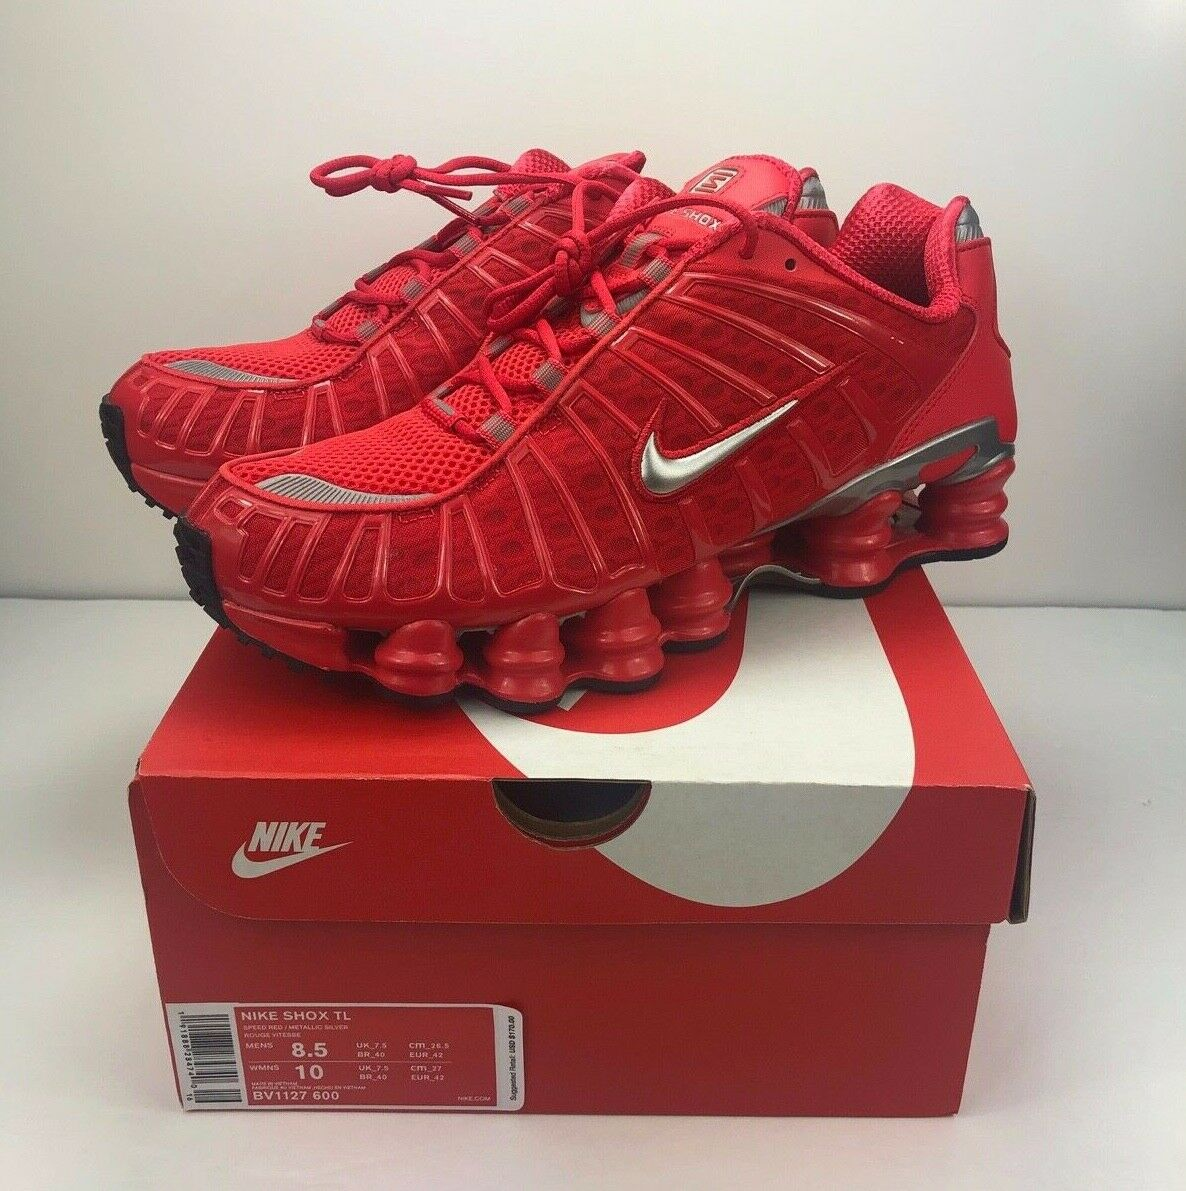 Nike Shox TL Speed Red Metallic Silver Running shoes BV1127-600 Mens Size 8.5